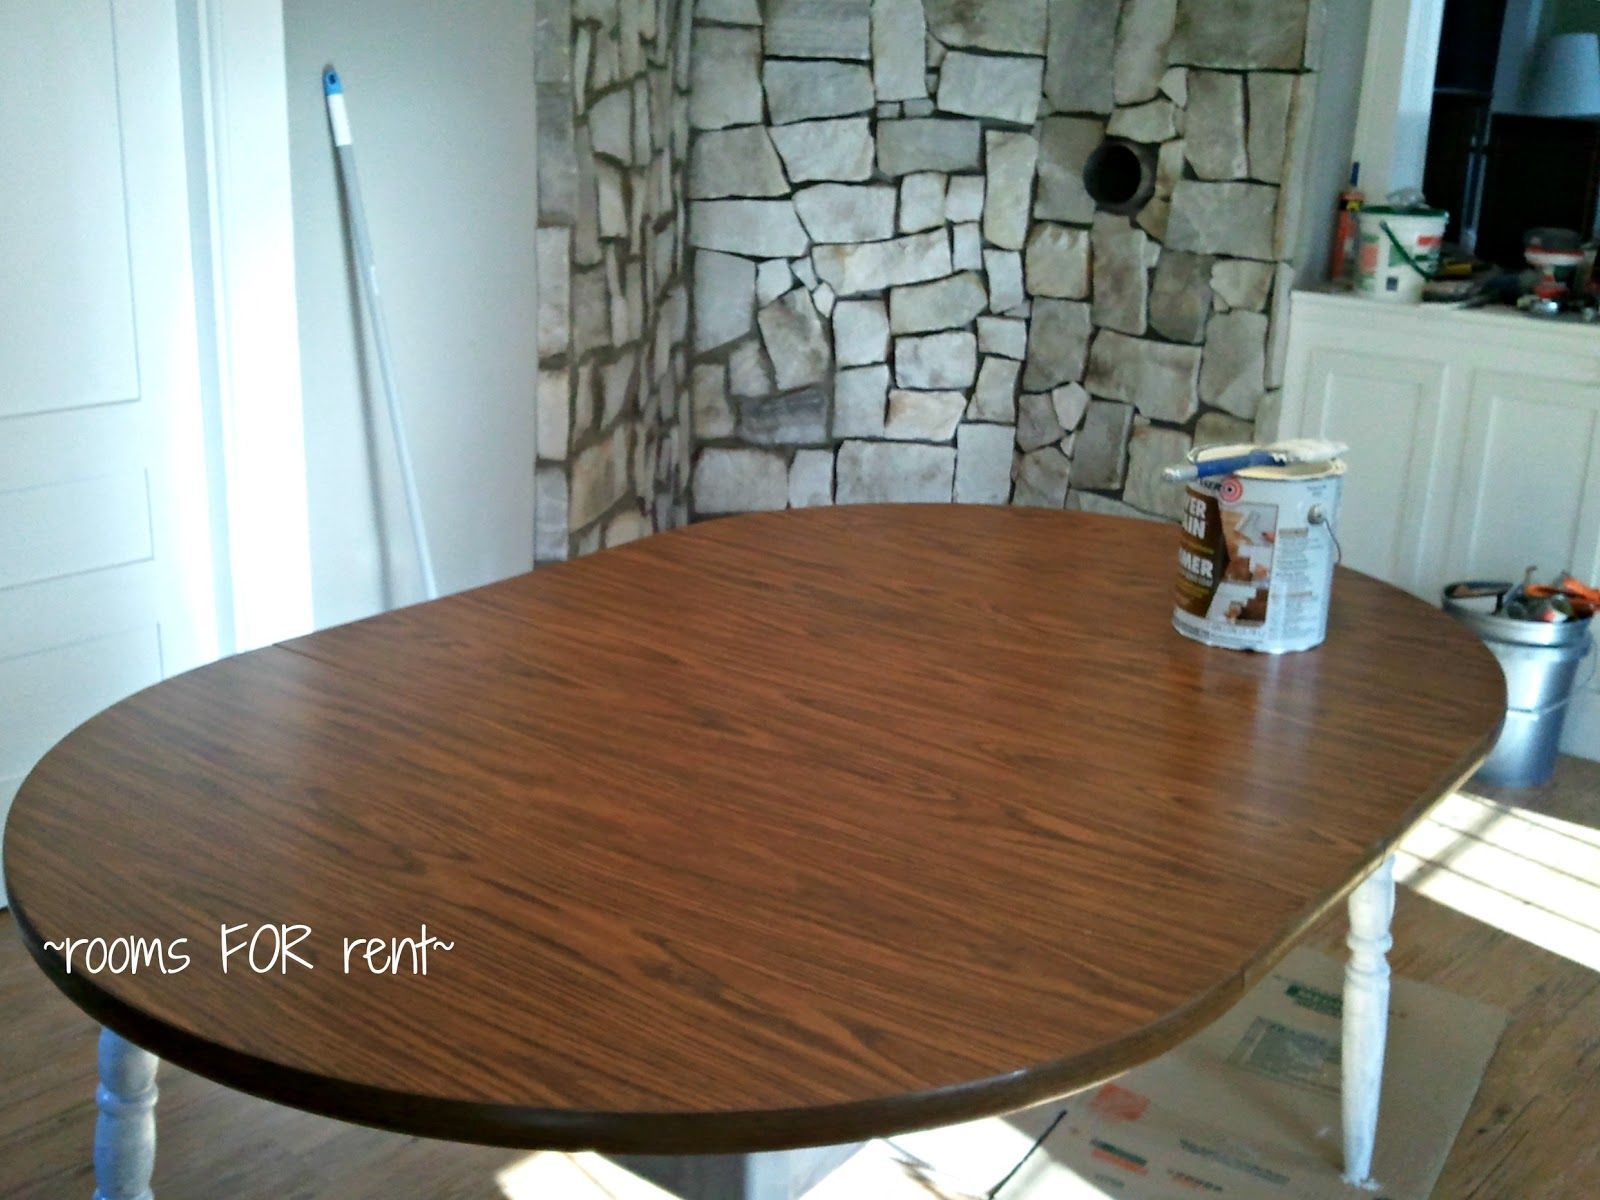 refinishing kitchen table Refinishing a large table with gel stain She has some good tips and achieved a nice effect Furniture Get Creative Pinterest Stains Java and Java